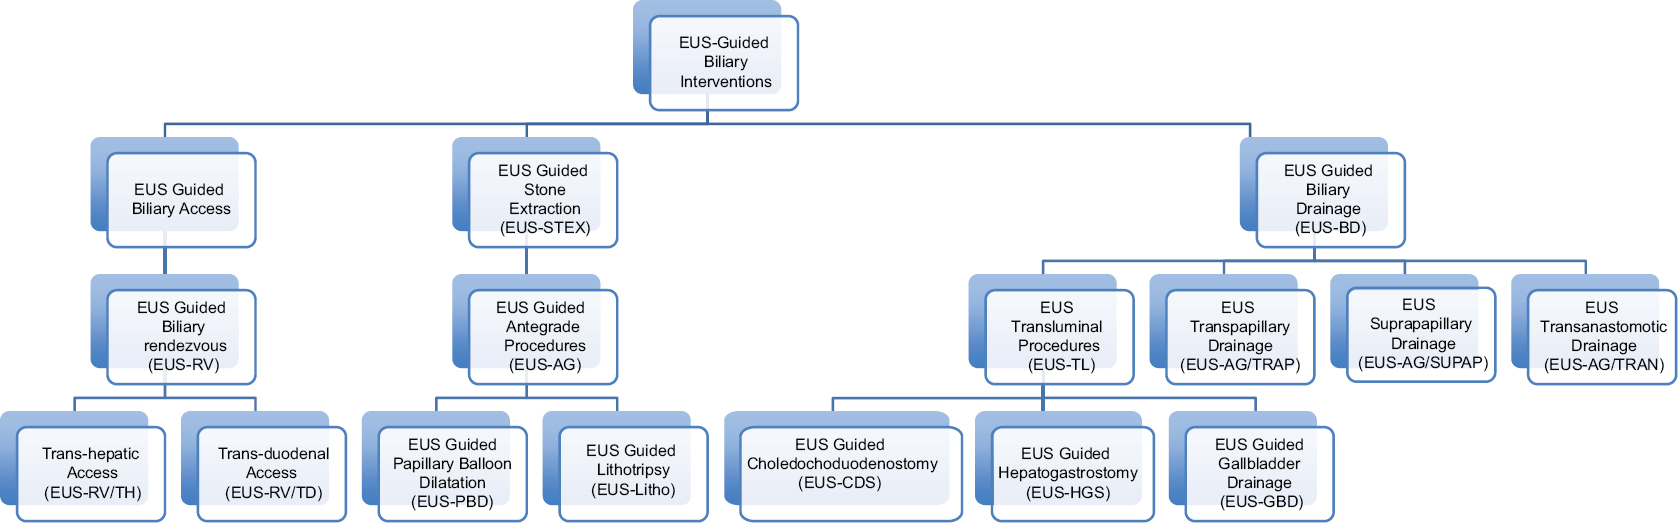 Figure 1: EUS-guided biliary interventions